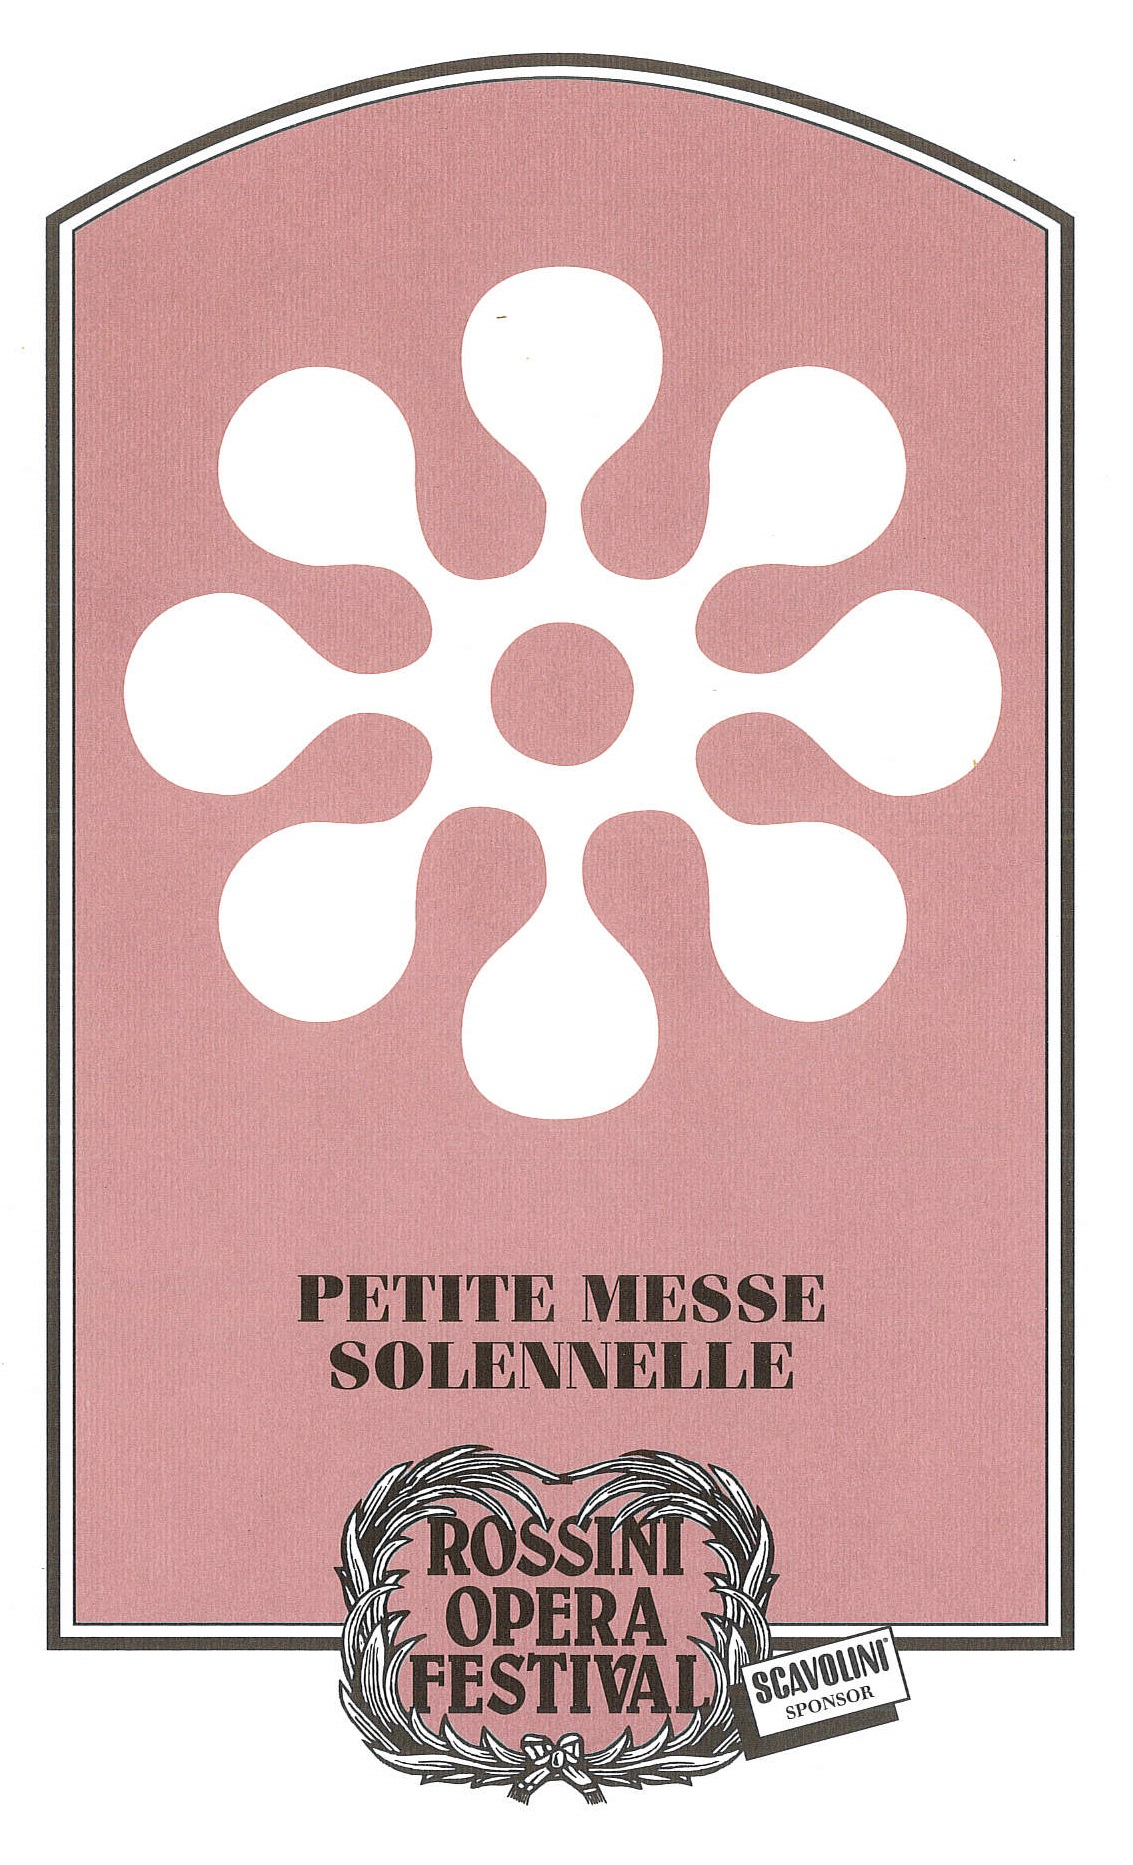 Petite Messe Solennelle 1999